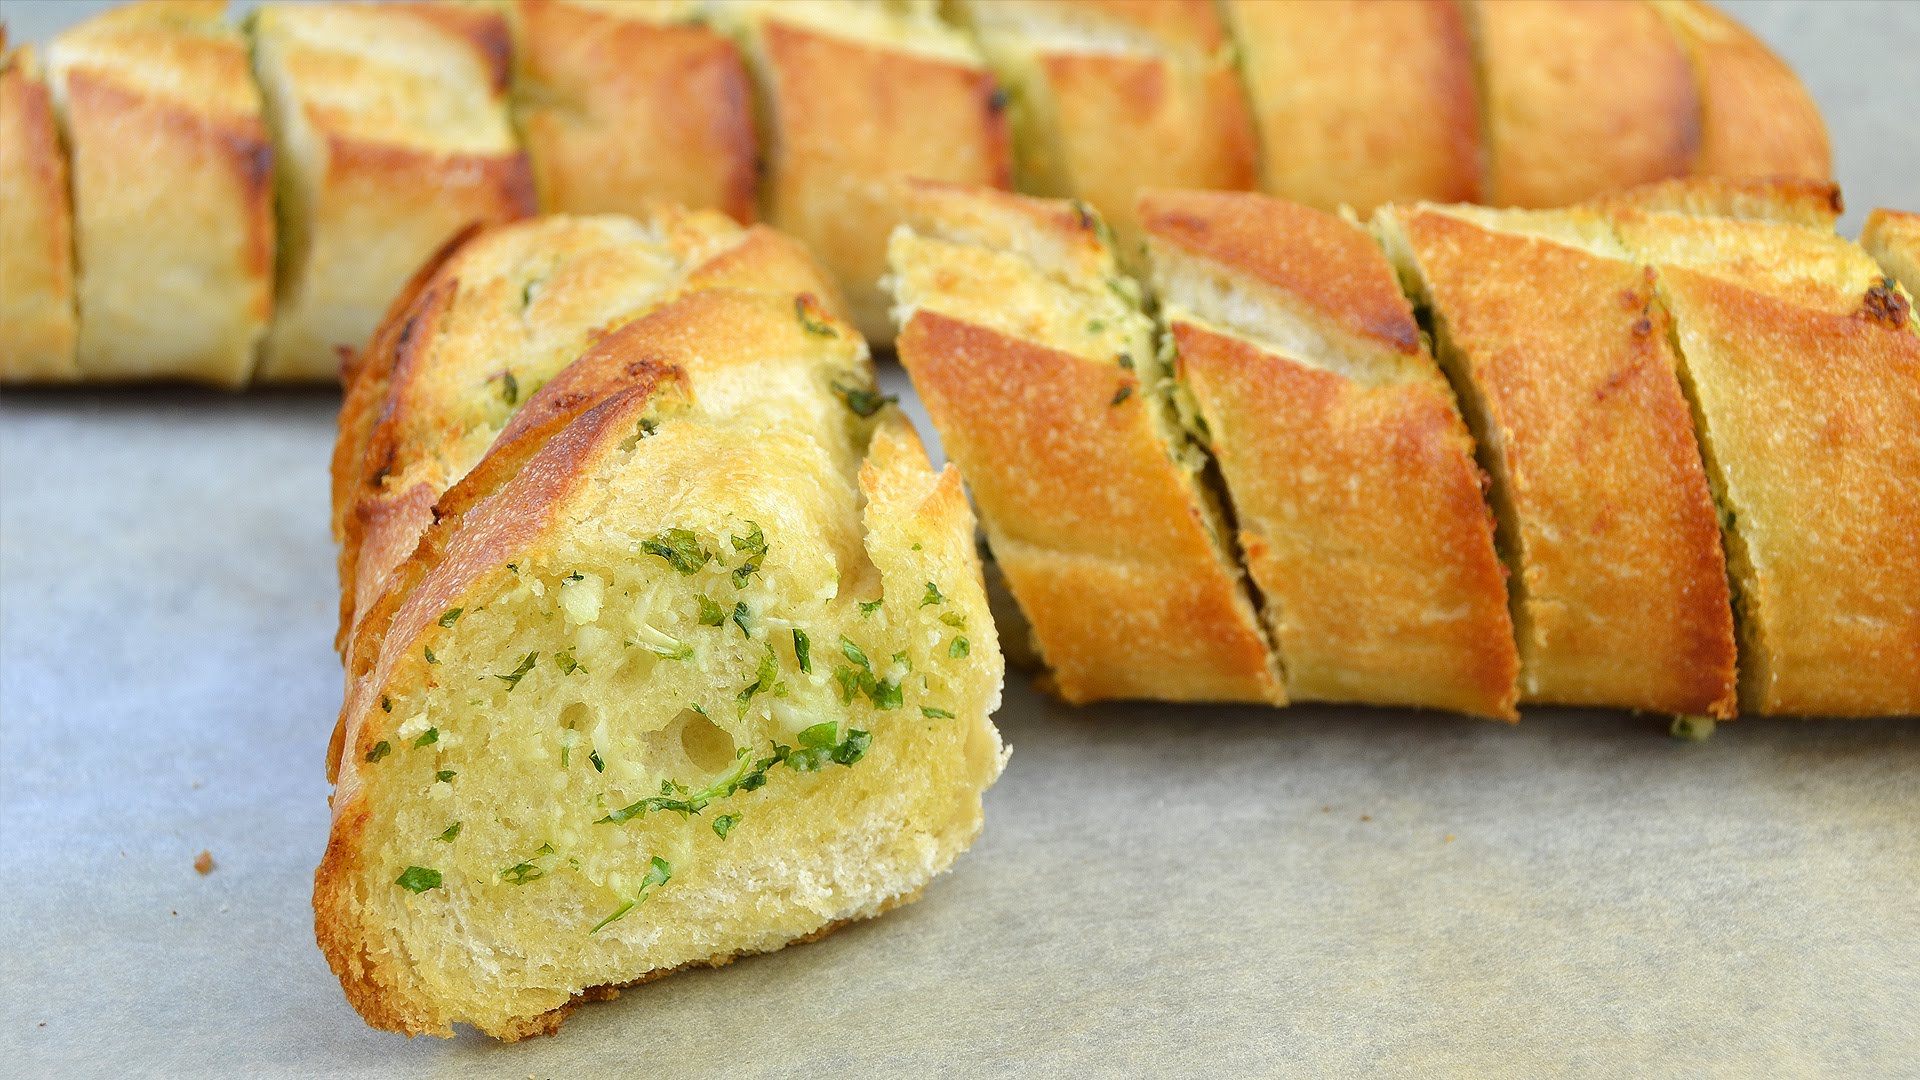 Is Garlic Bread Healthy  Top 10 Suhoor meals the healthy Ramadan meal plan